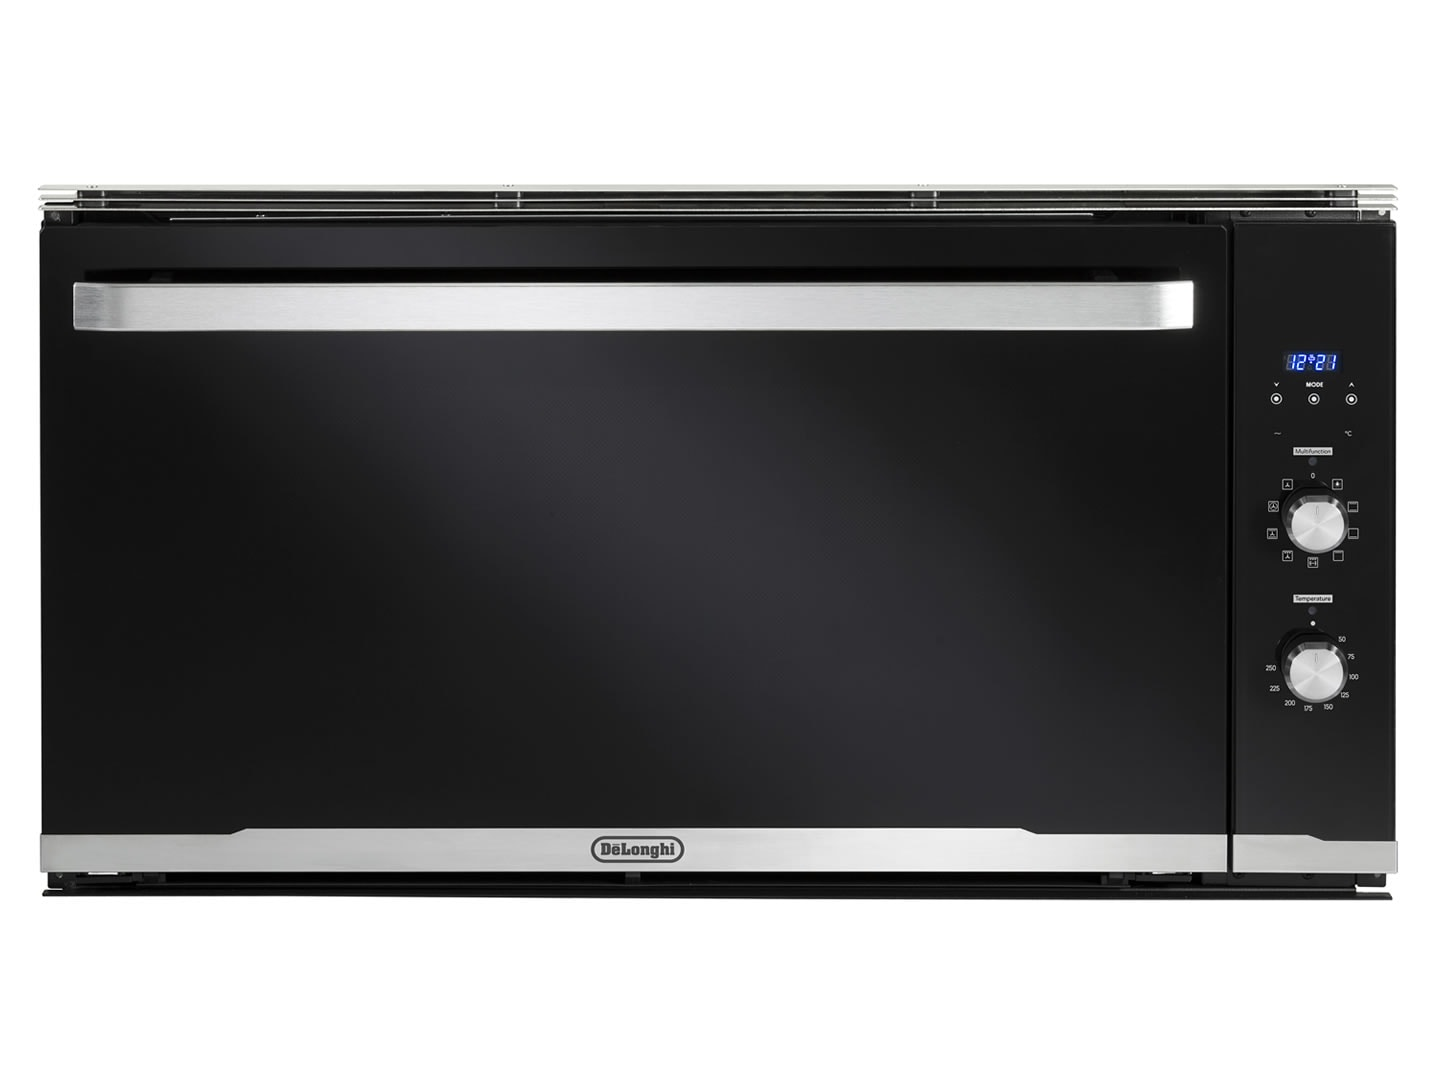 DeLonghi 90cm 9 Function Built In Premium Oven - DEP909M